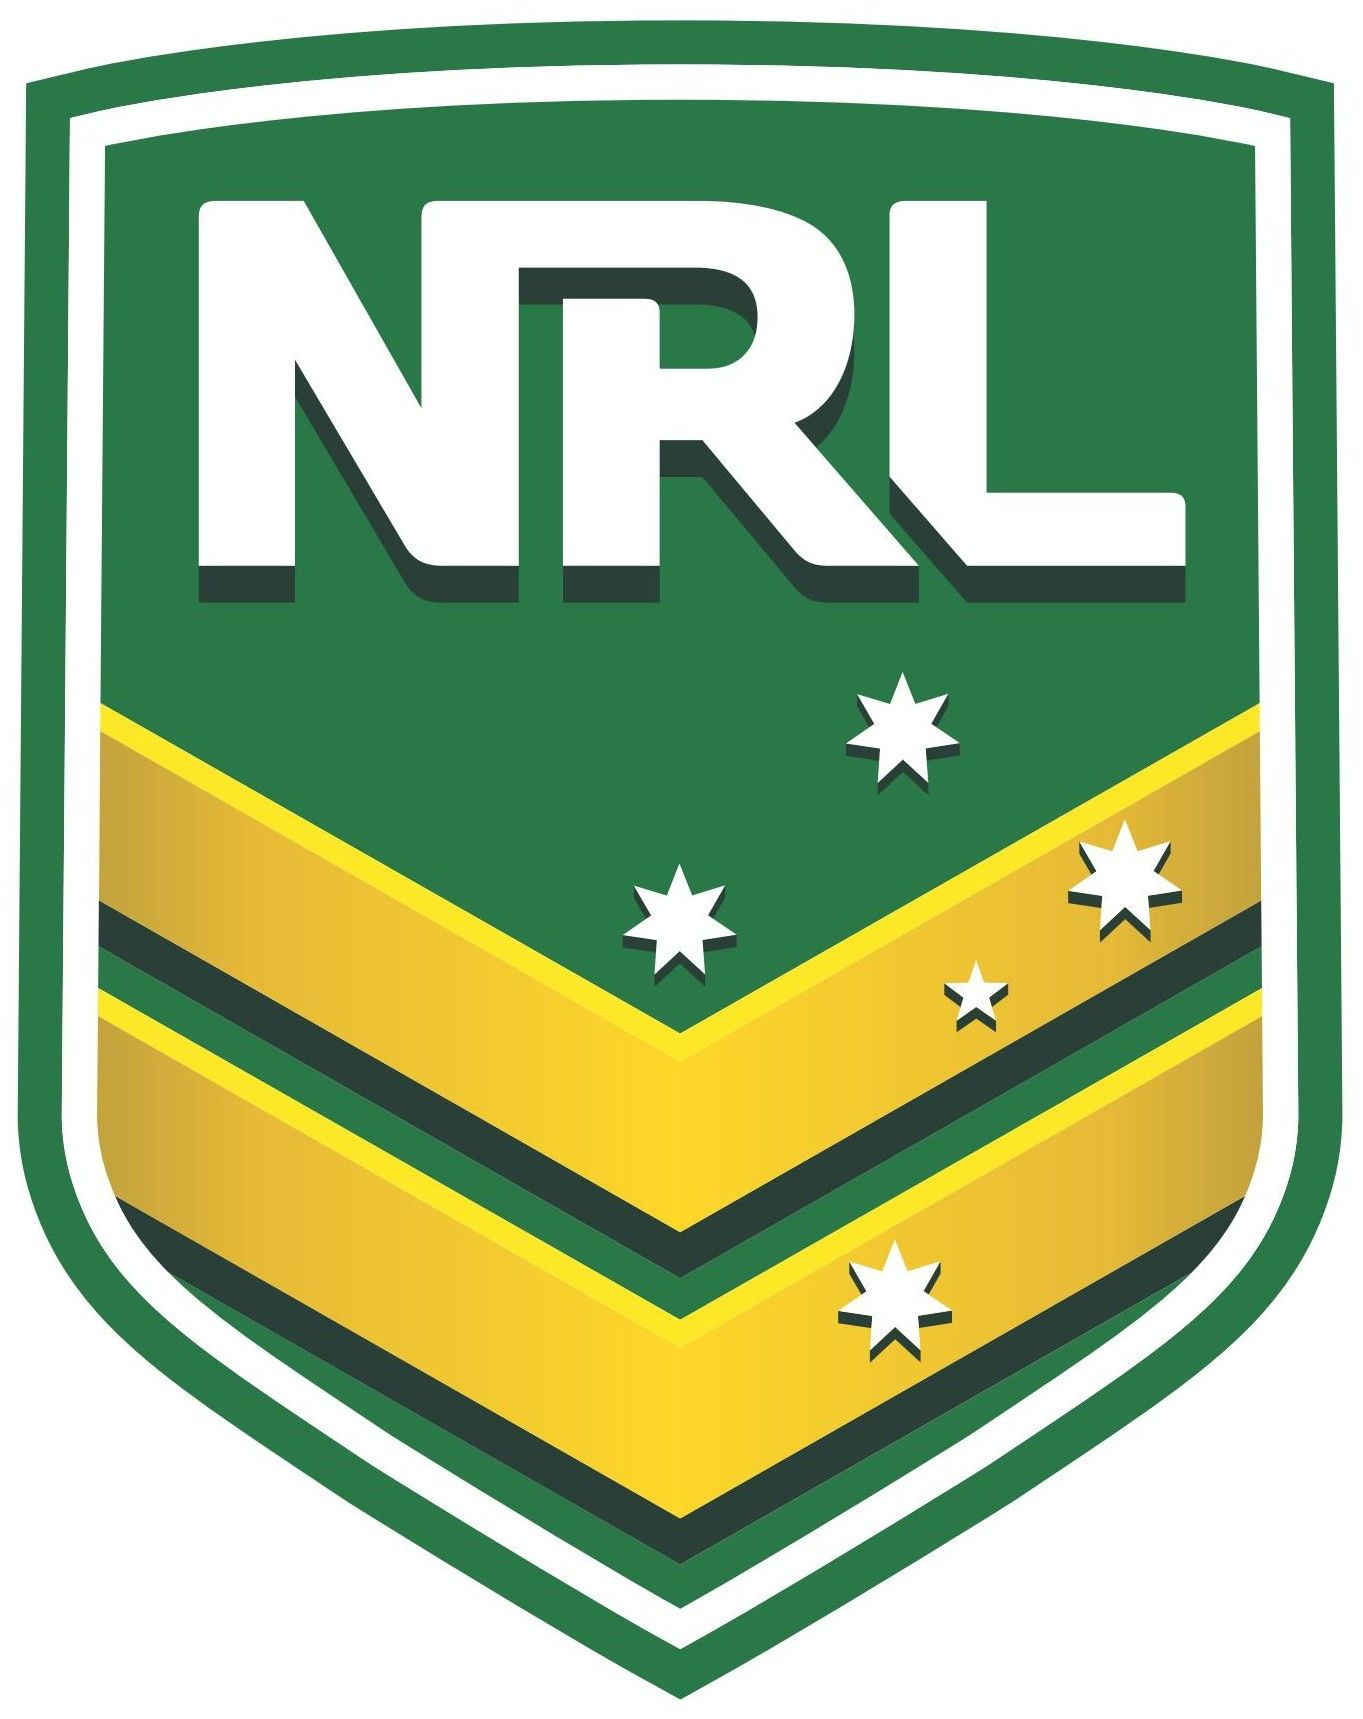 NRL Logo (National Rugby League) Intergovernmental